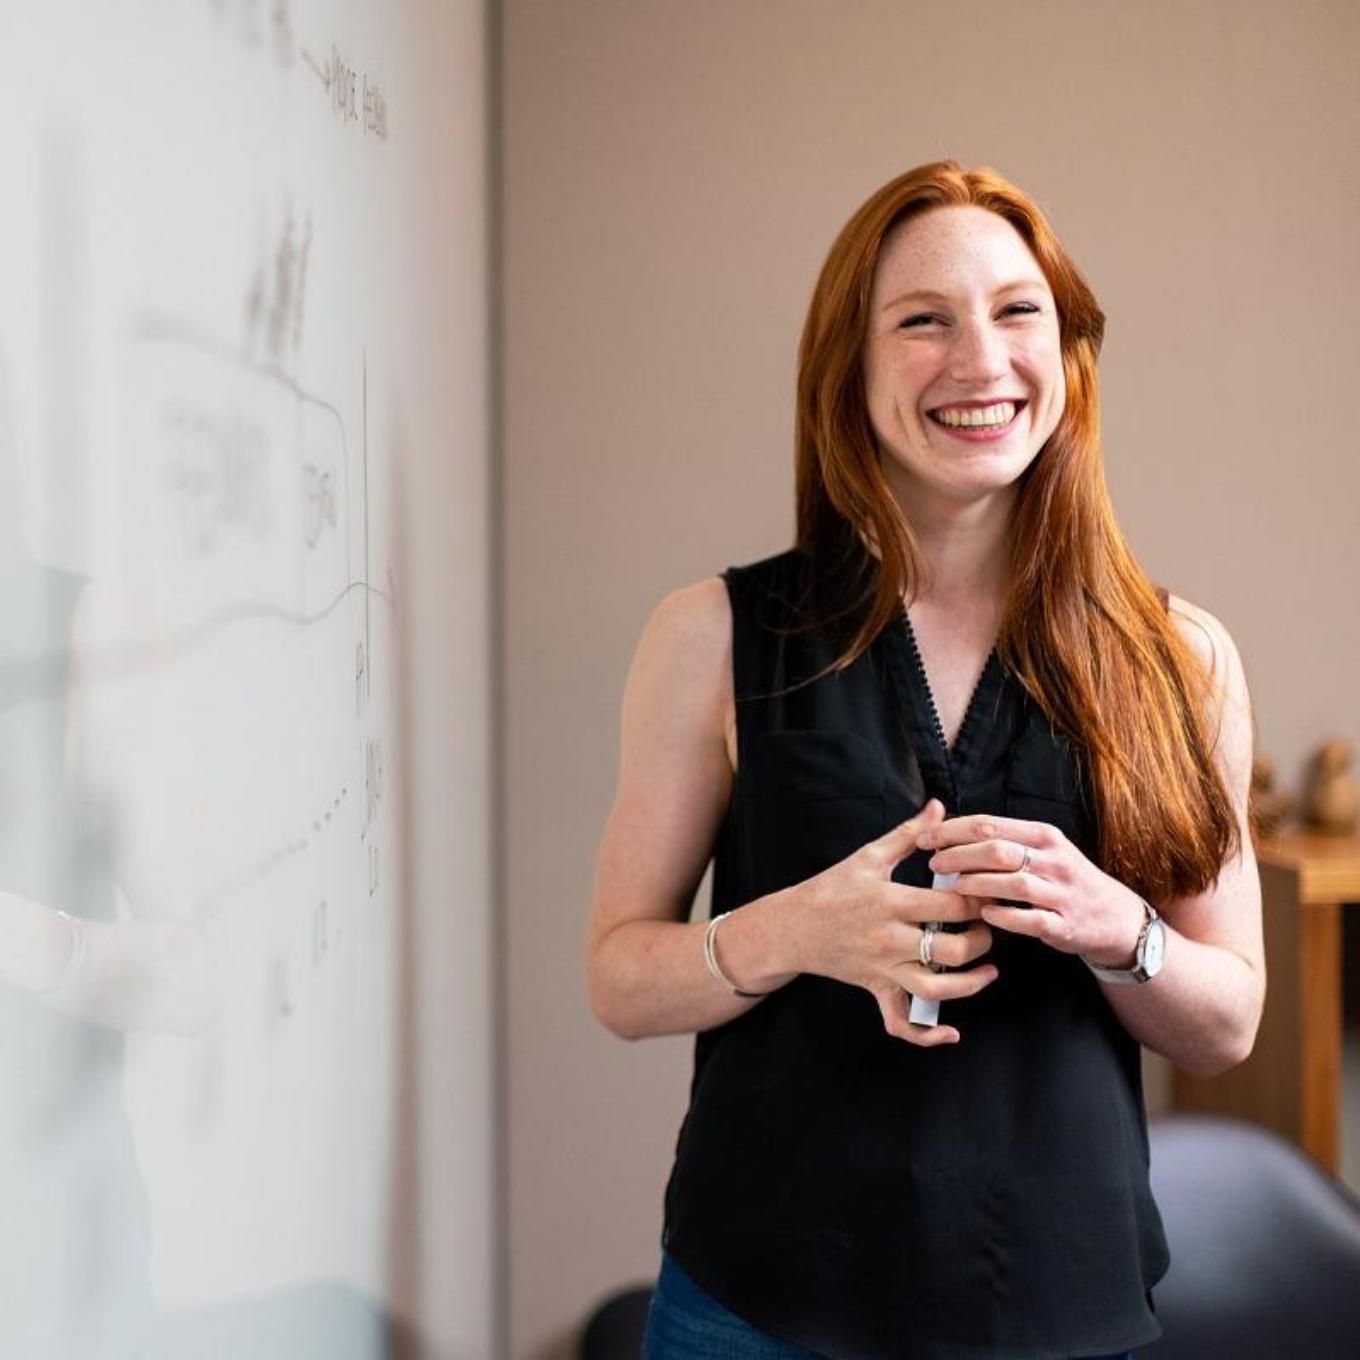 Woman standing in front of whiteboard